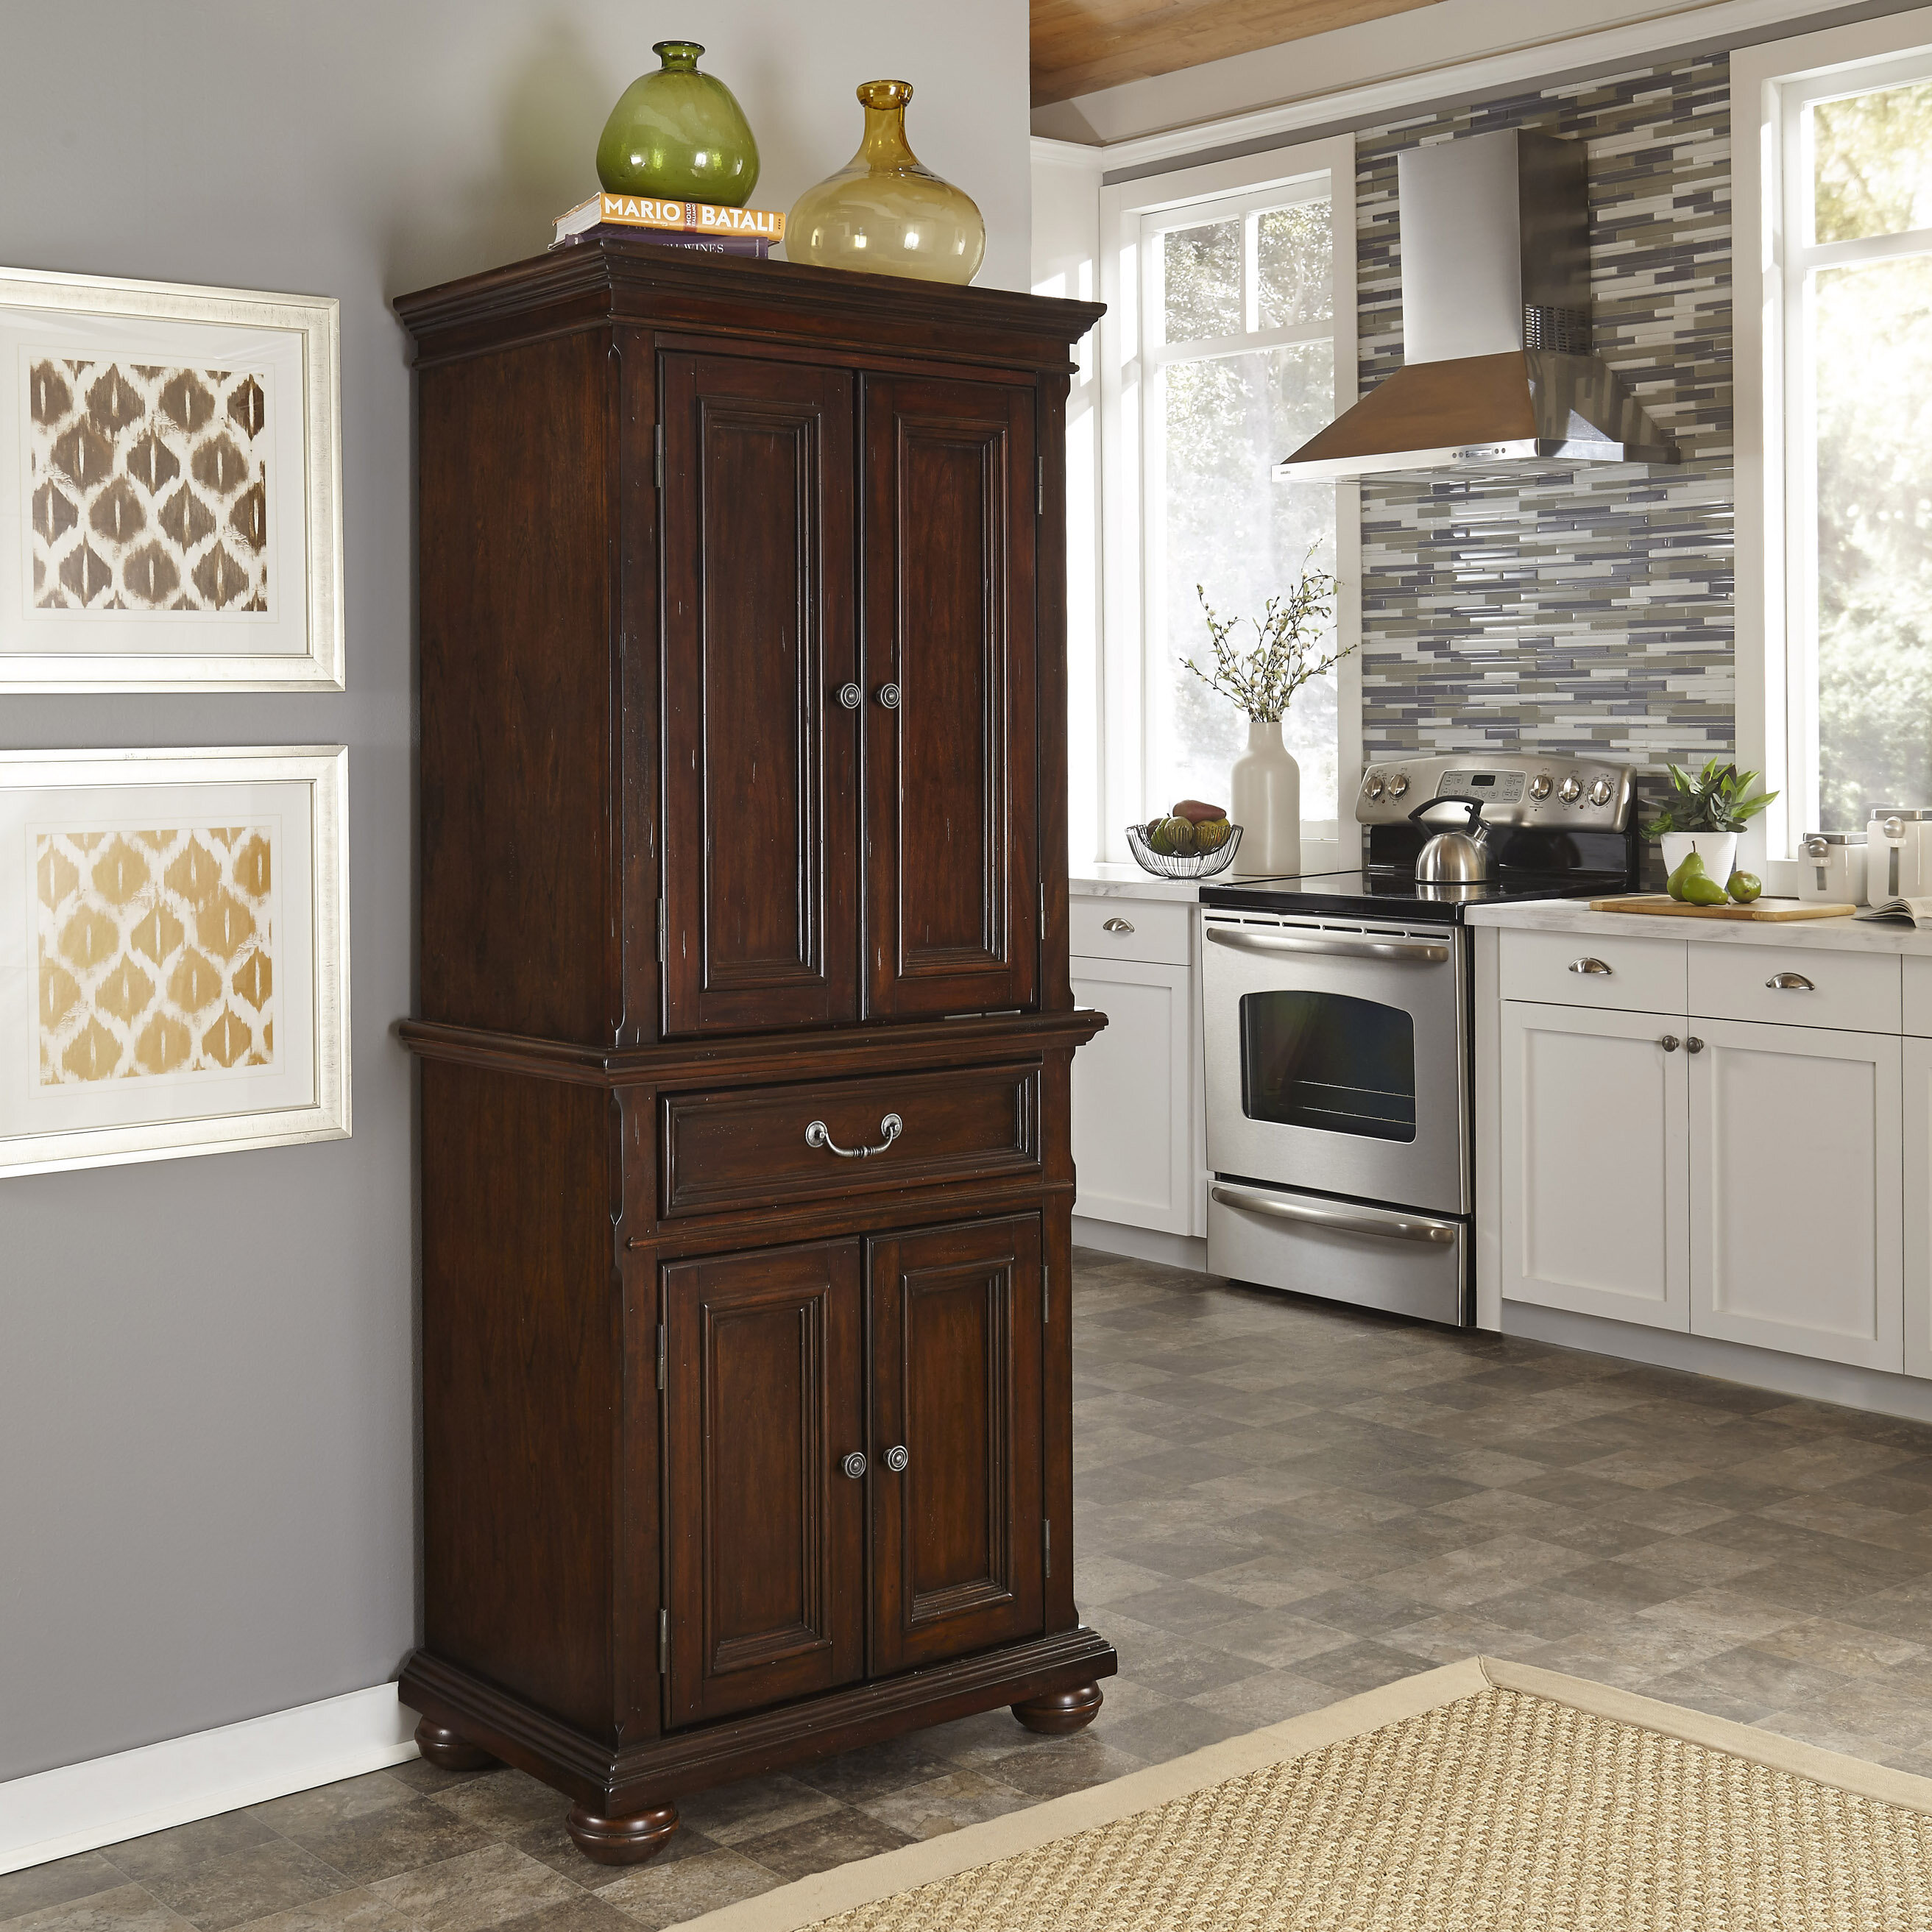 Darby Home Co Givens 72 Kitchen Pantry Reviews